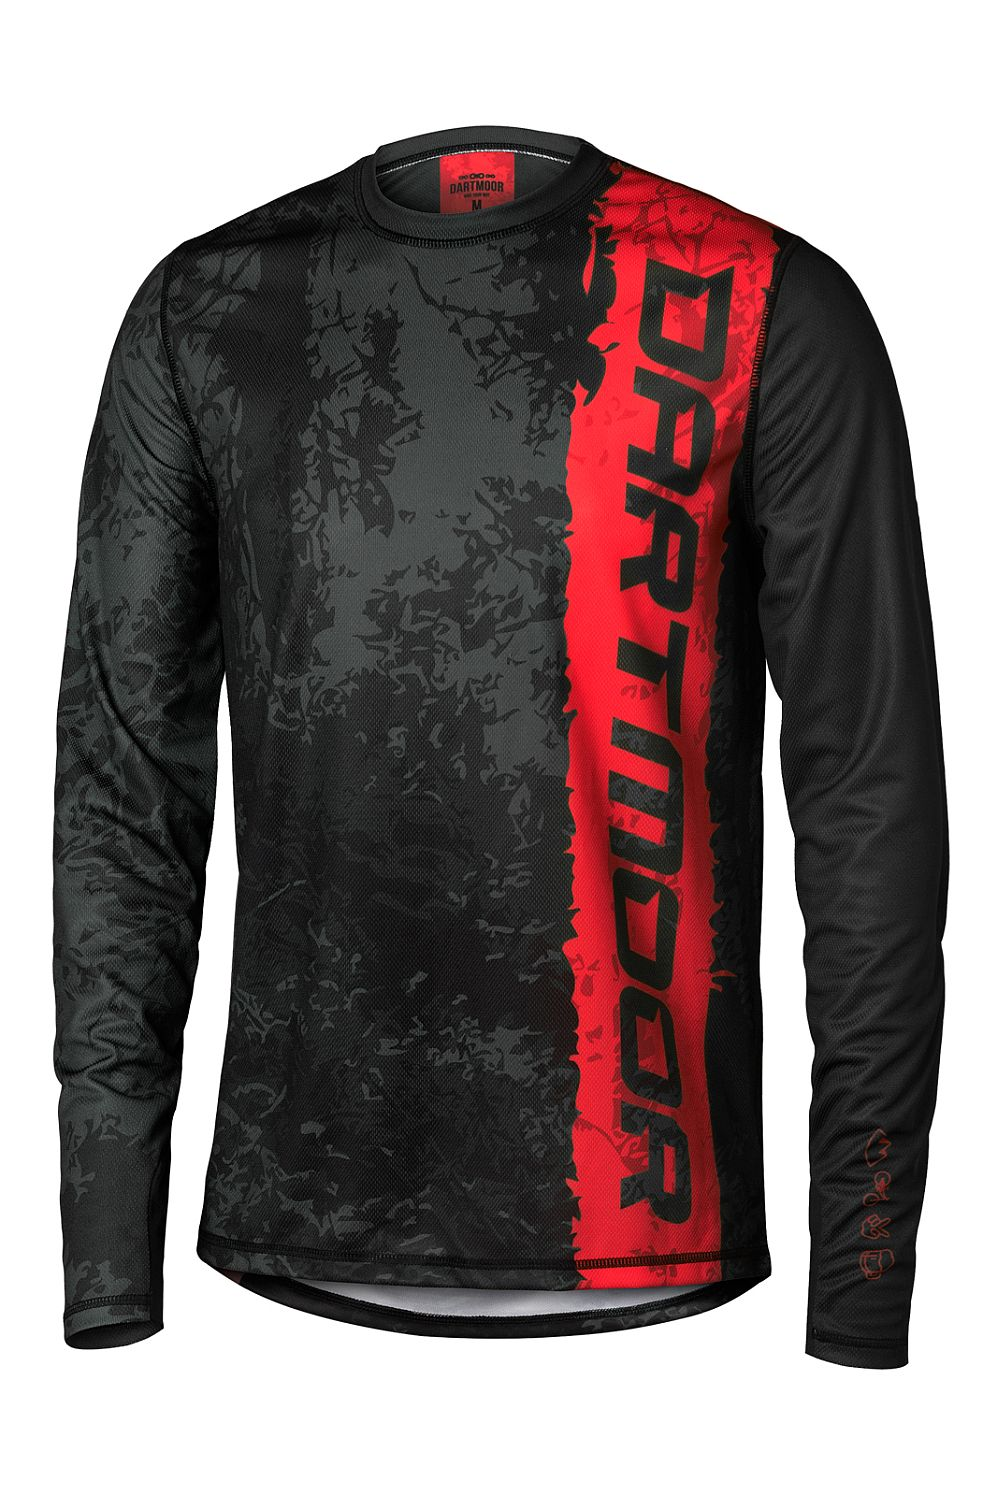 Dartmoor Woods Tech Jersey - LS - Red Devil Black